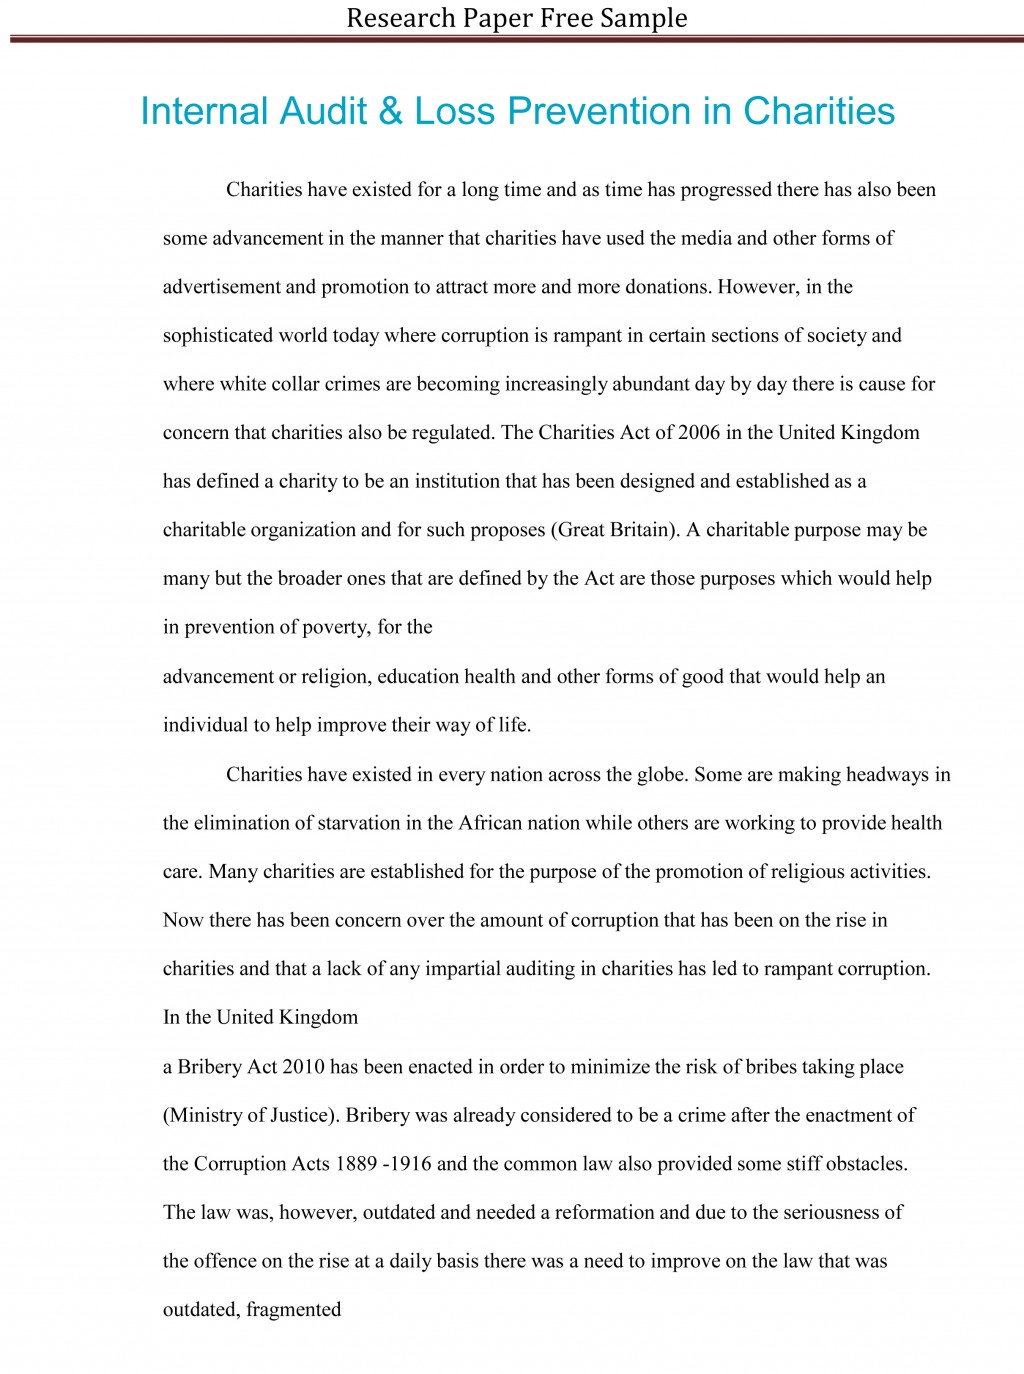 010 Writing An Introduction To Research Paper Help Paragraph Top A Effective For How Write Powerpoint Ppt Large